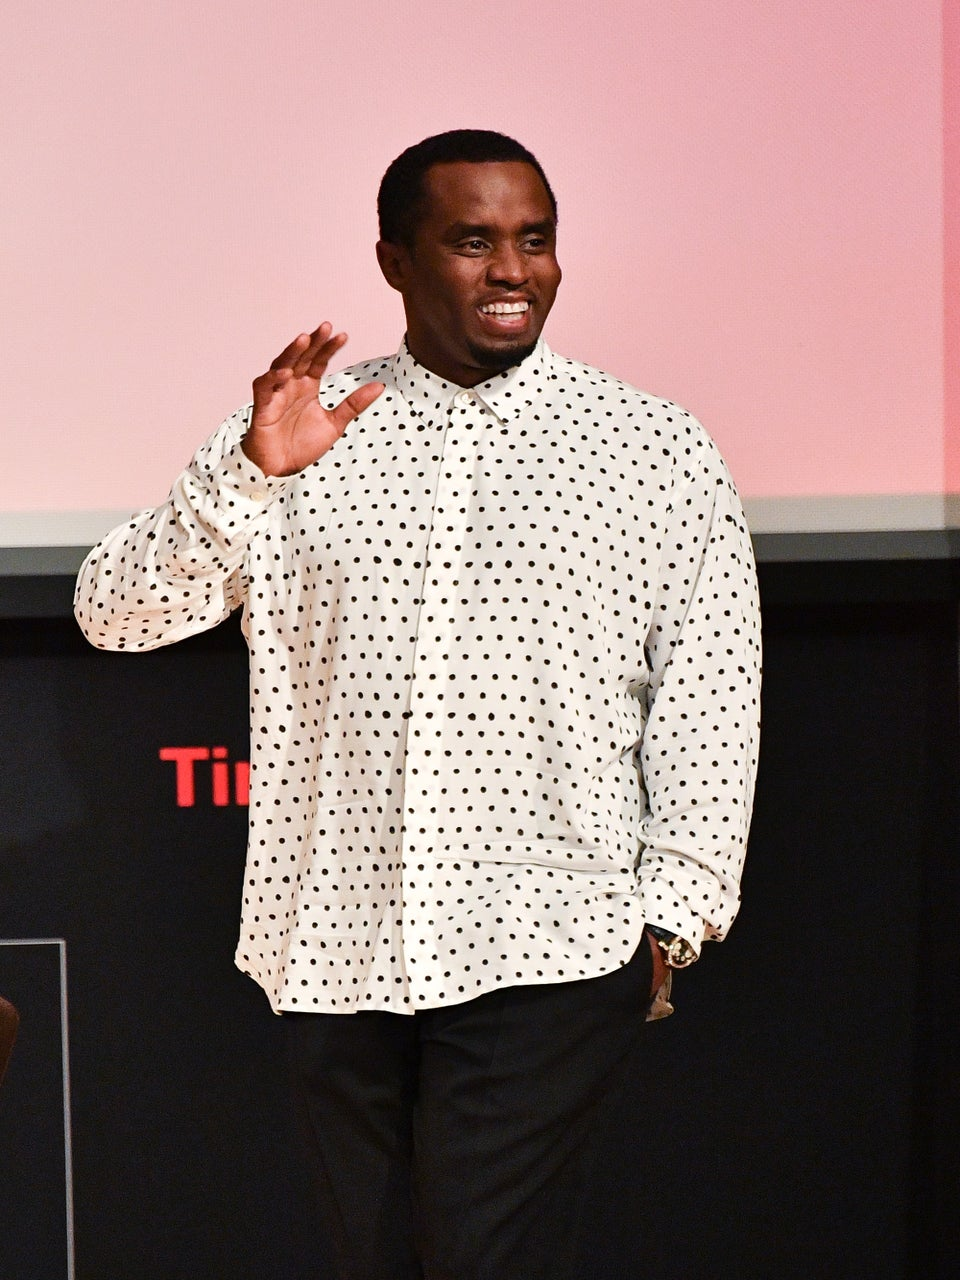 Diddy Wants To Purchase The NFL So Players Can 'Protest For Your People'